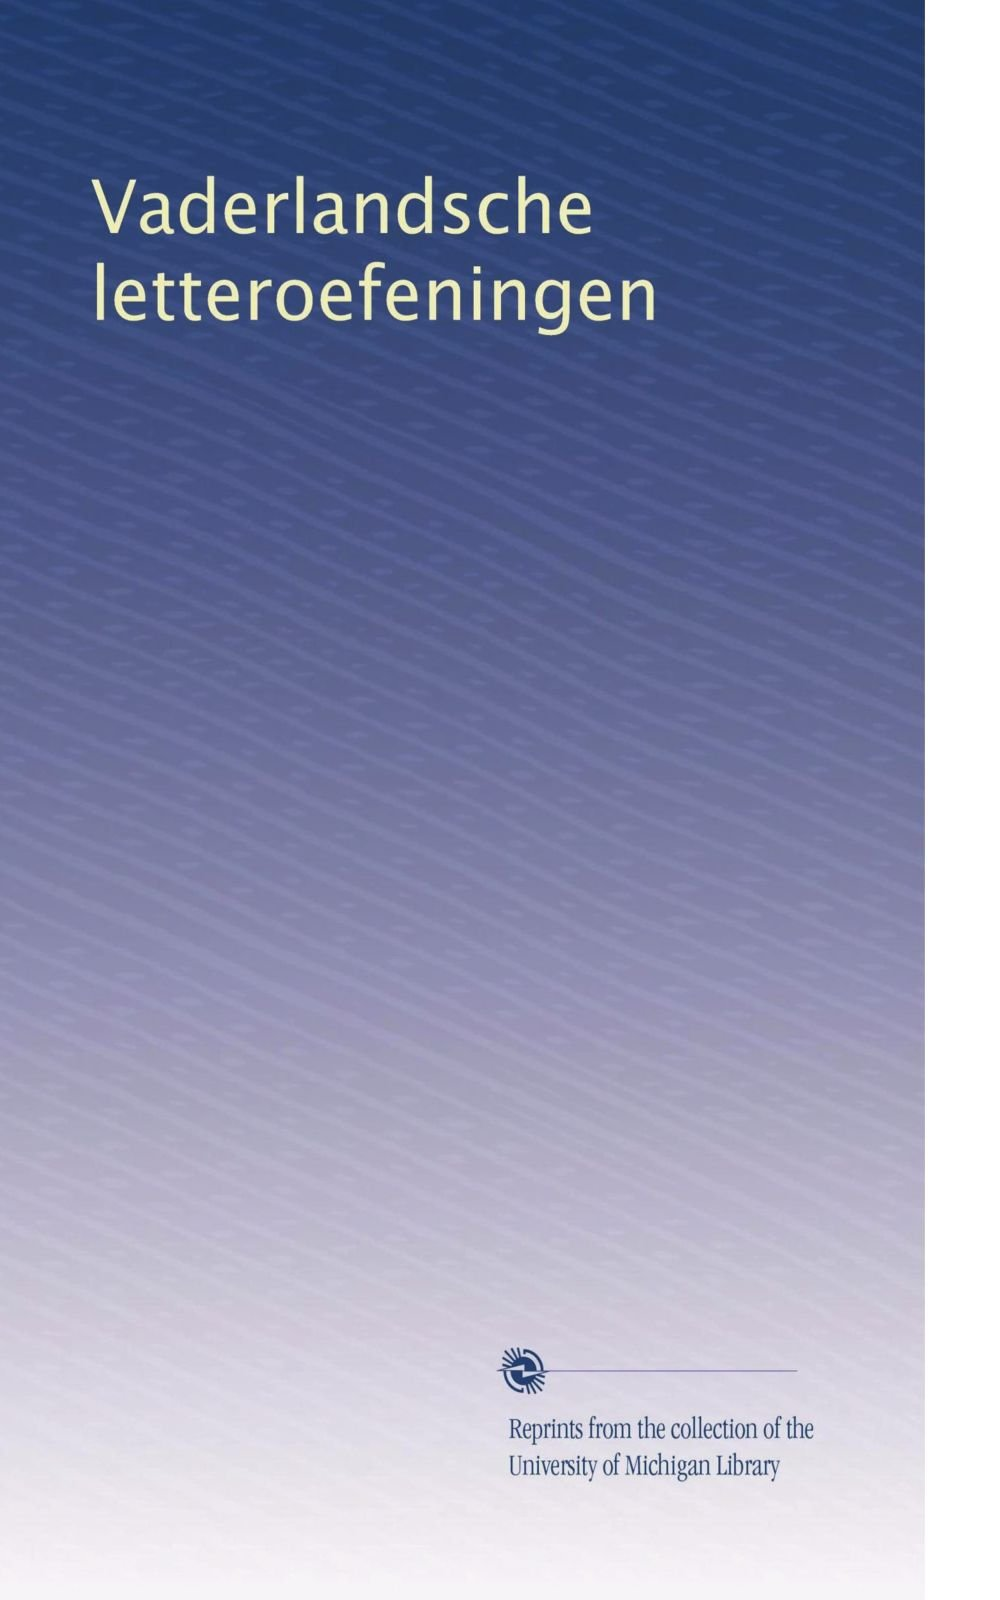 Download Vaderlandsche letteroefeningen (Volume 41) (Dutch Edition) pdf